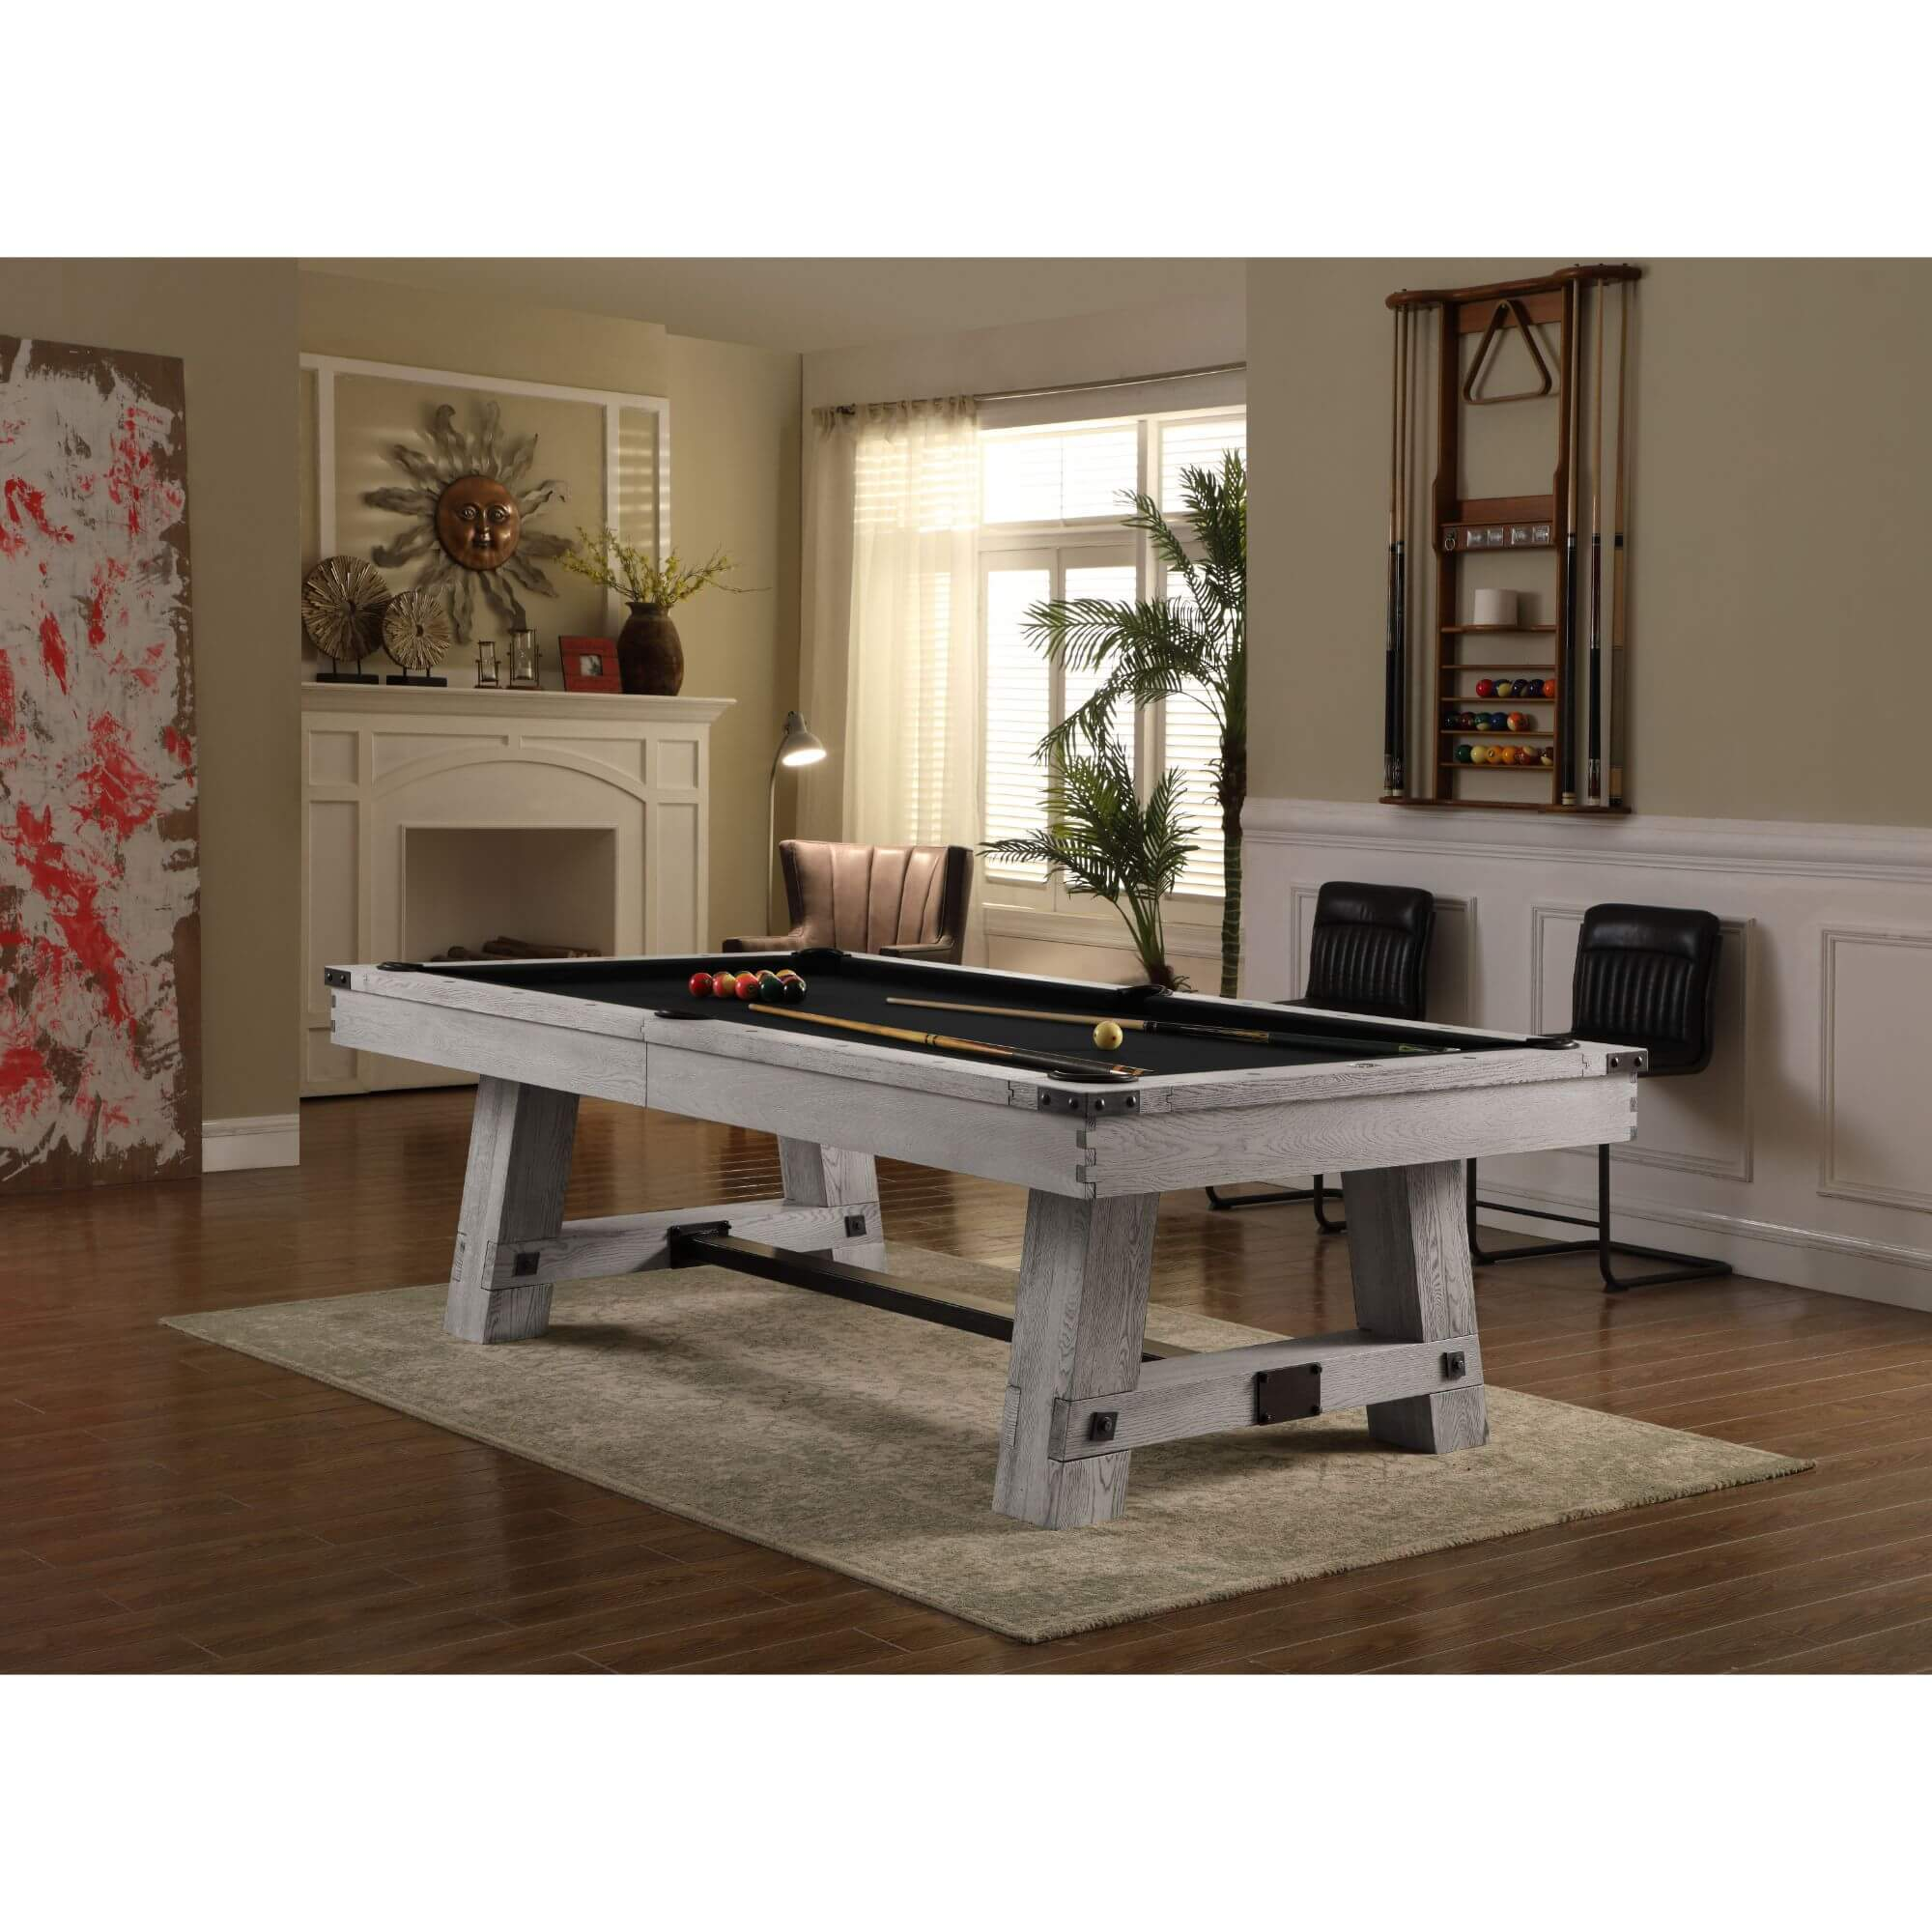 Playcraft Yukon River Slate Pool Table with Optional Dining Top - Gaming Blaze